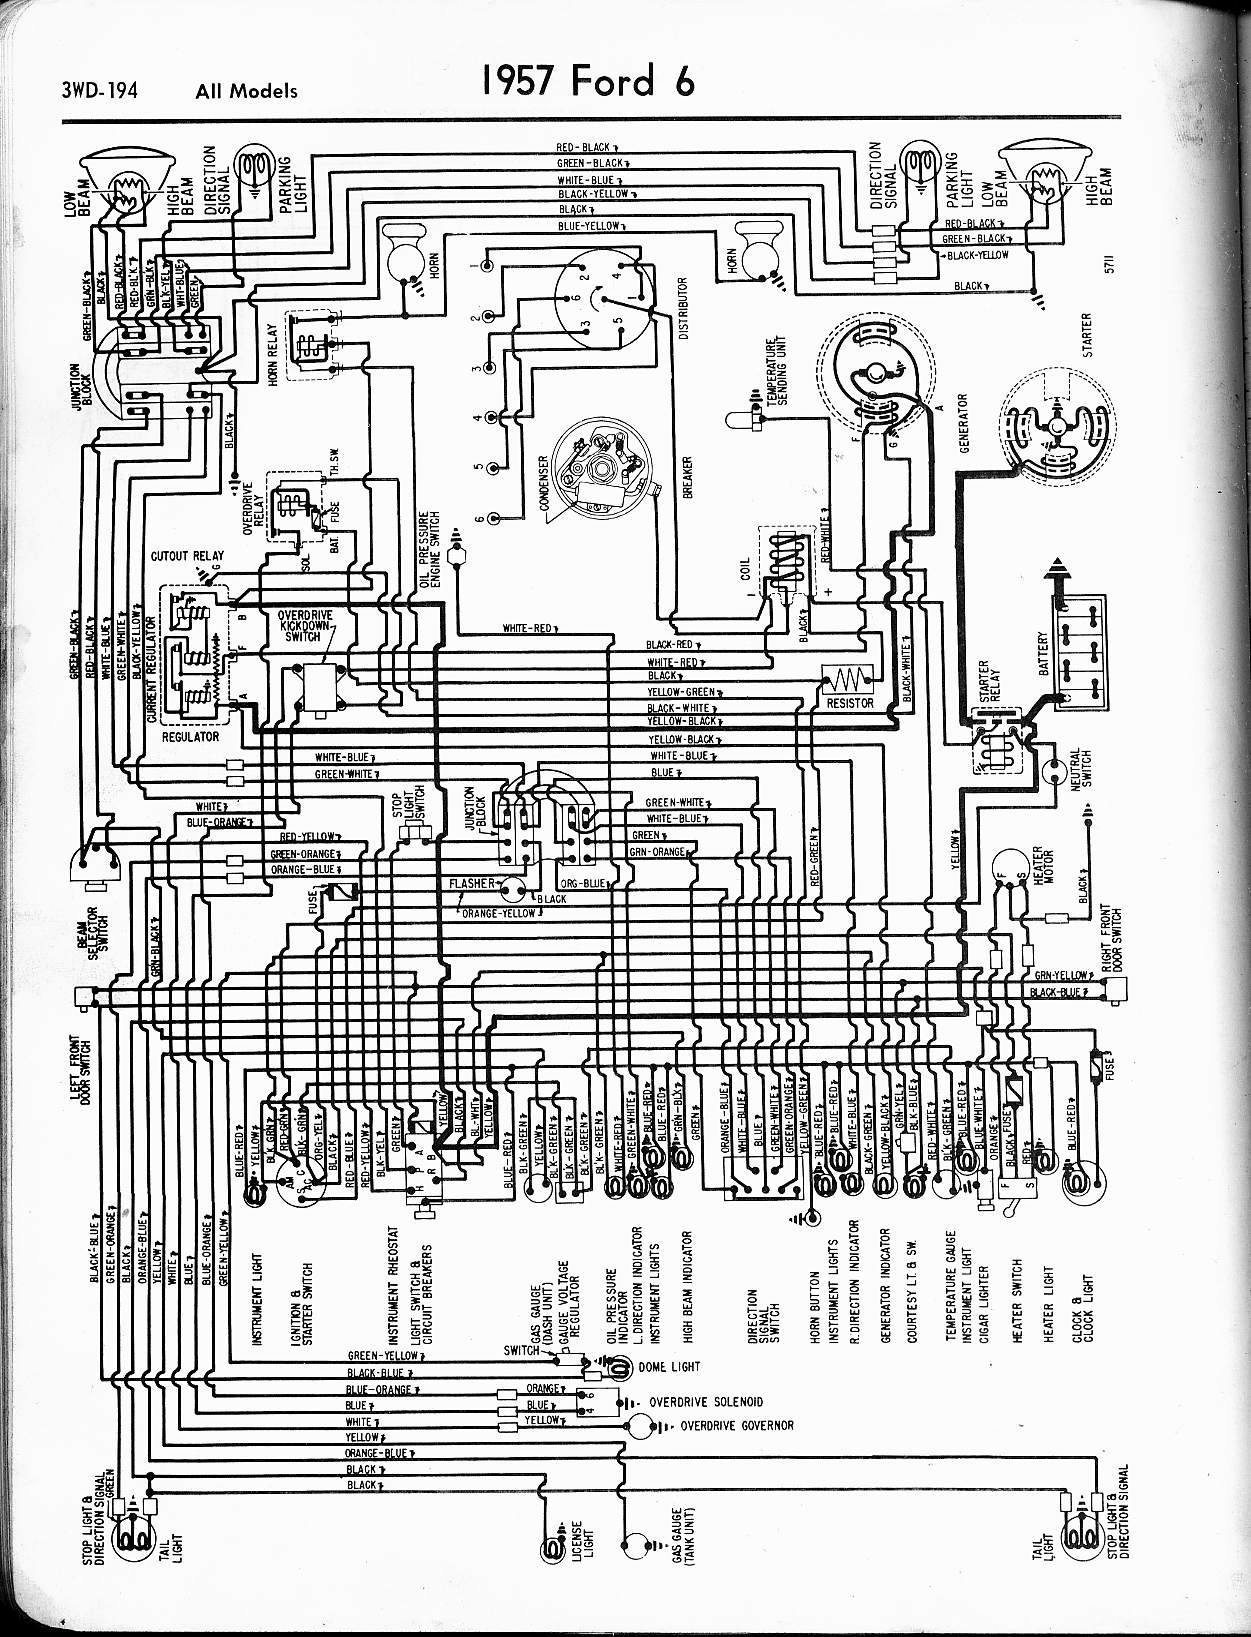 57_ford_wiring ford diagrams ford ltl 9000 wiring diagram at love-stories.co